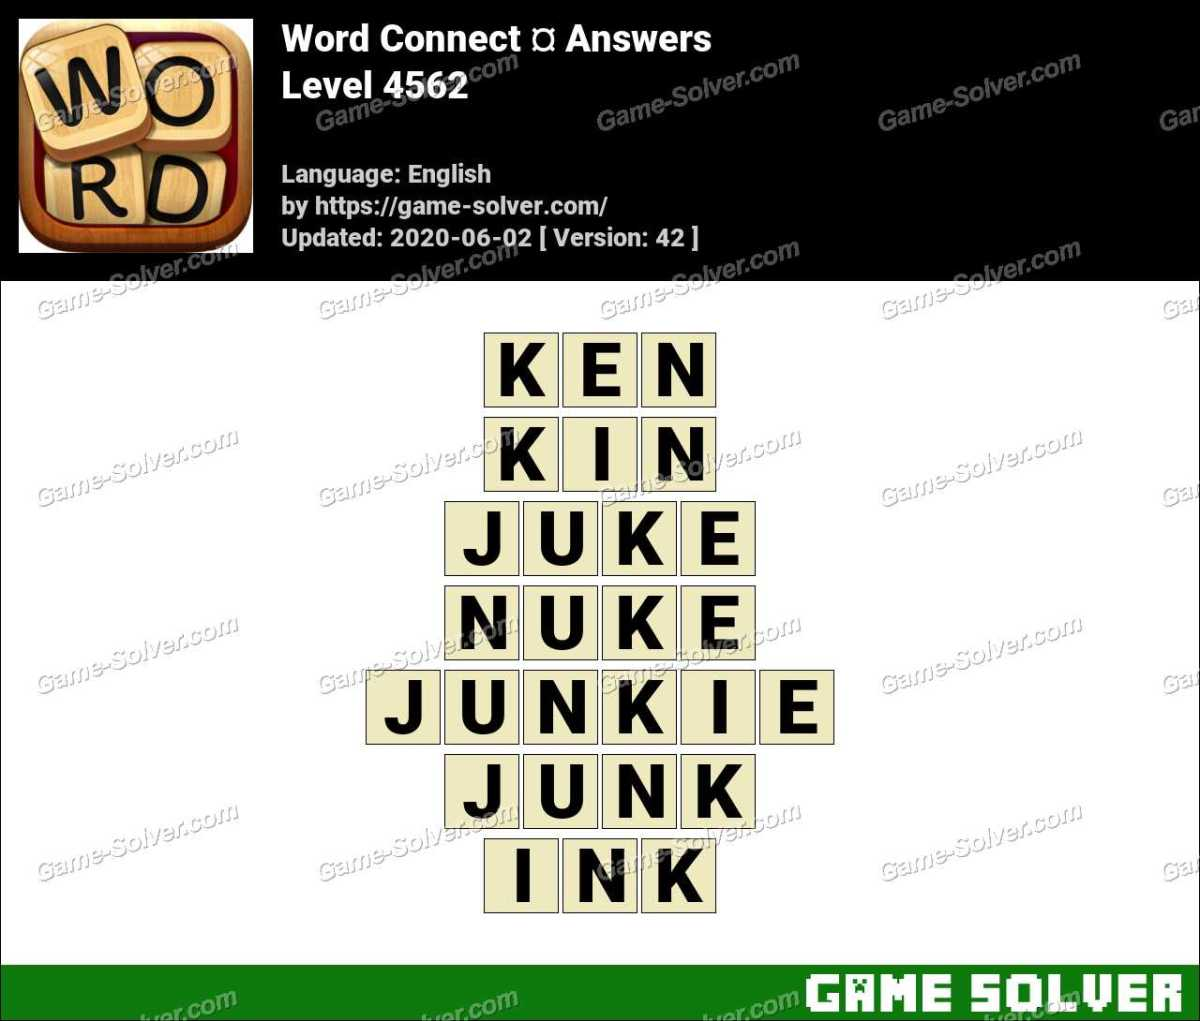 Word Connect Level 4562 Answers